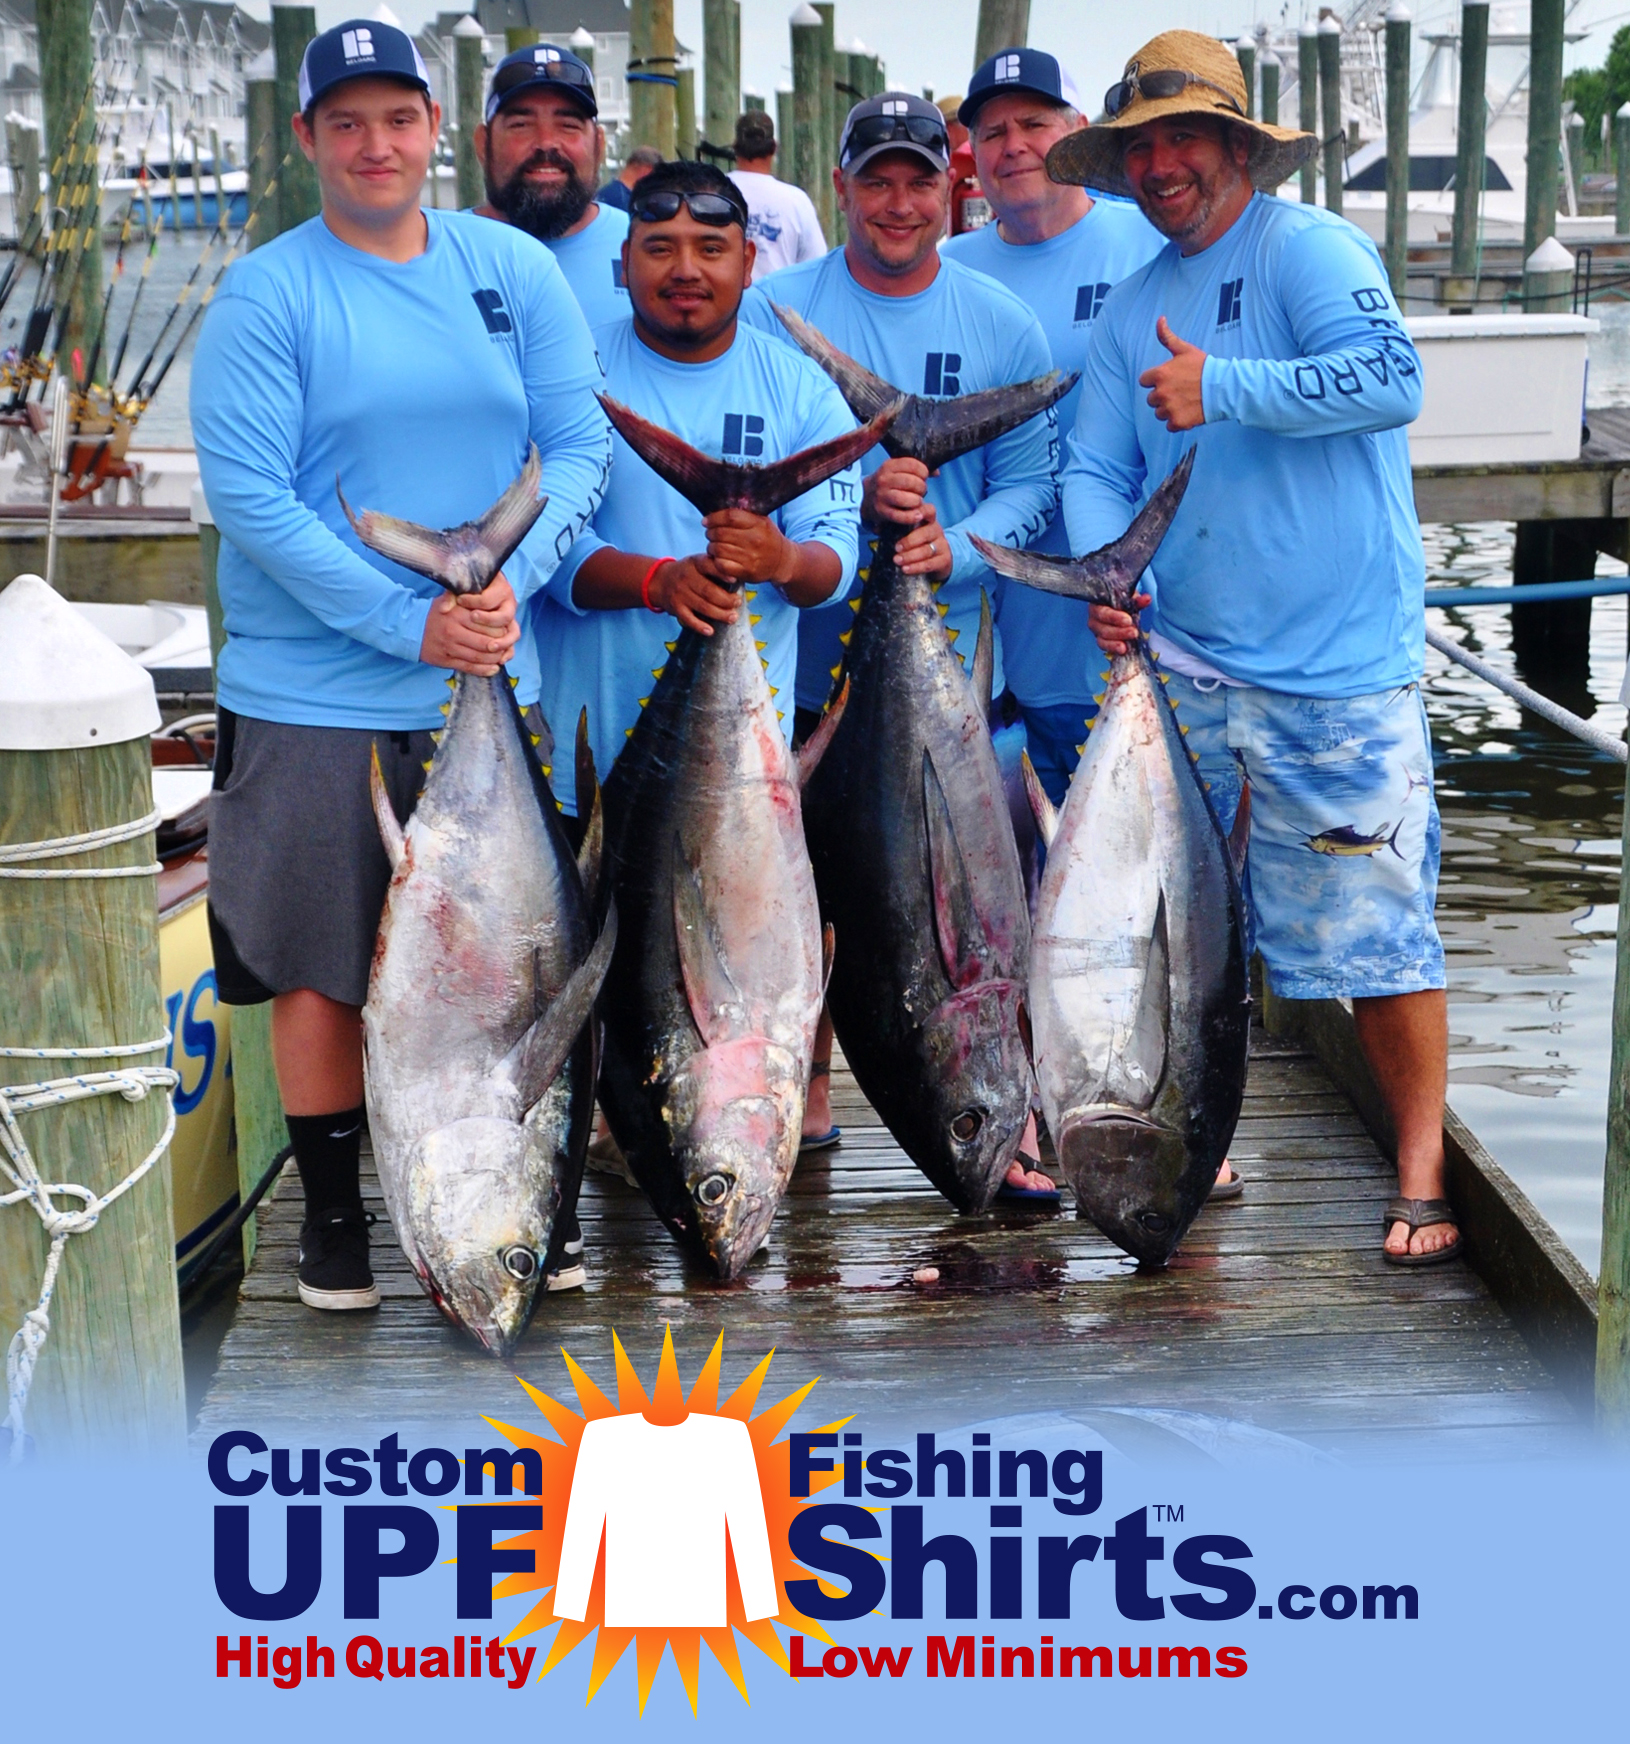 Custom-upf-fishing-shirts-Tuna-Belgard